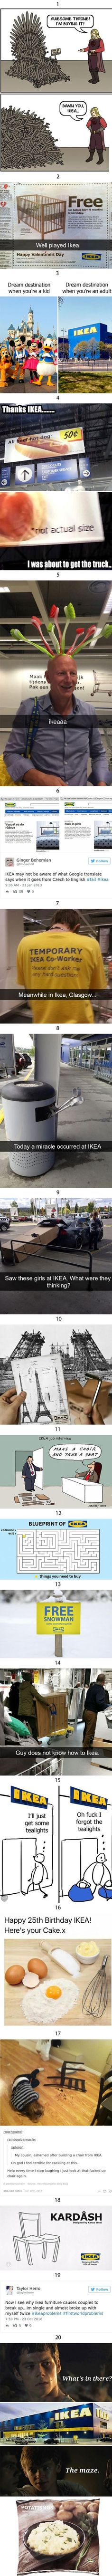 All this can be found in Ikea